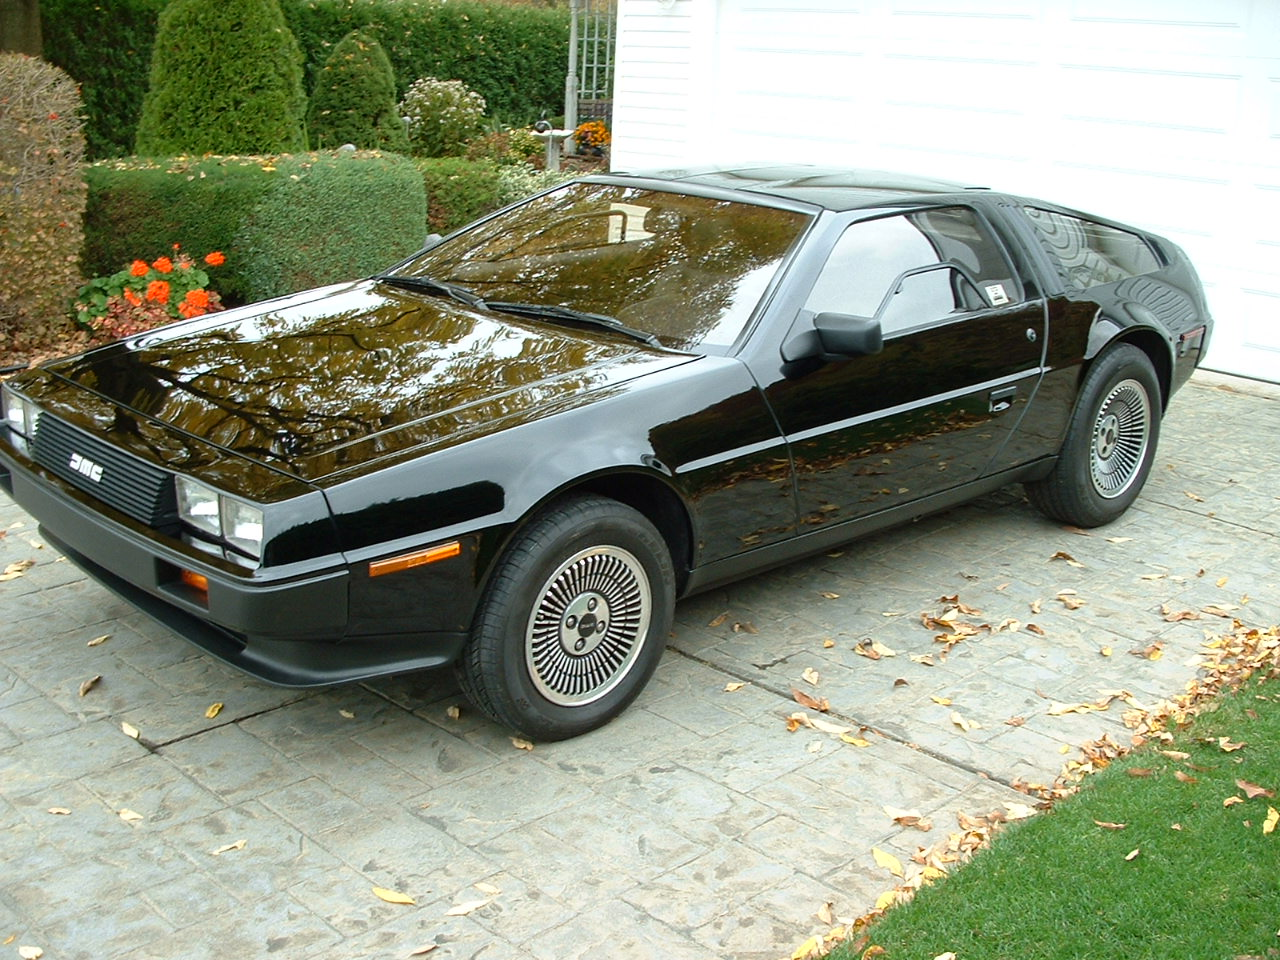 1983 Delorean DMC-12 picture